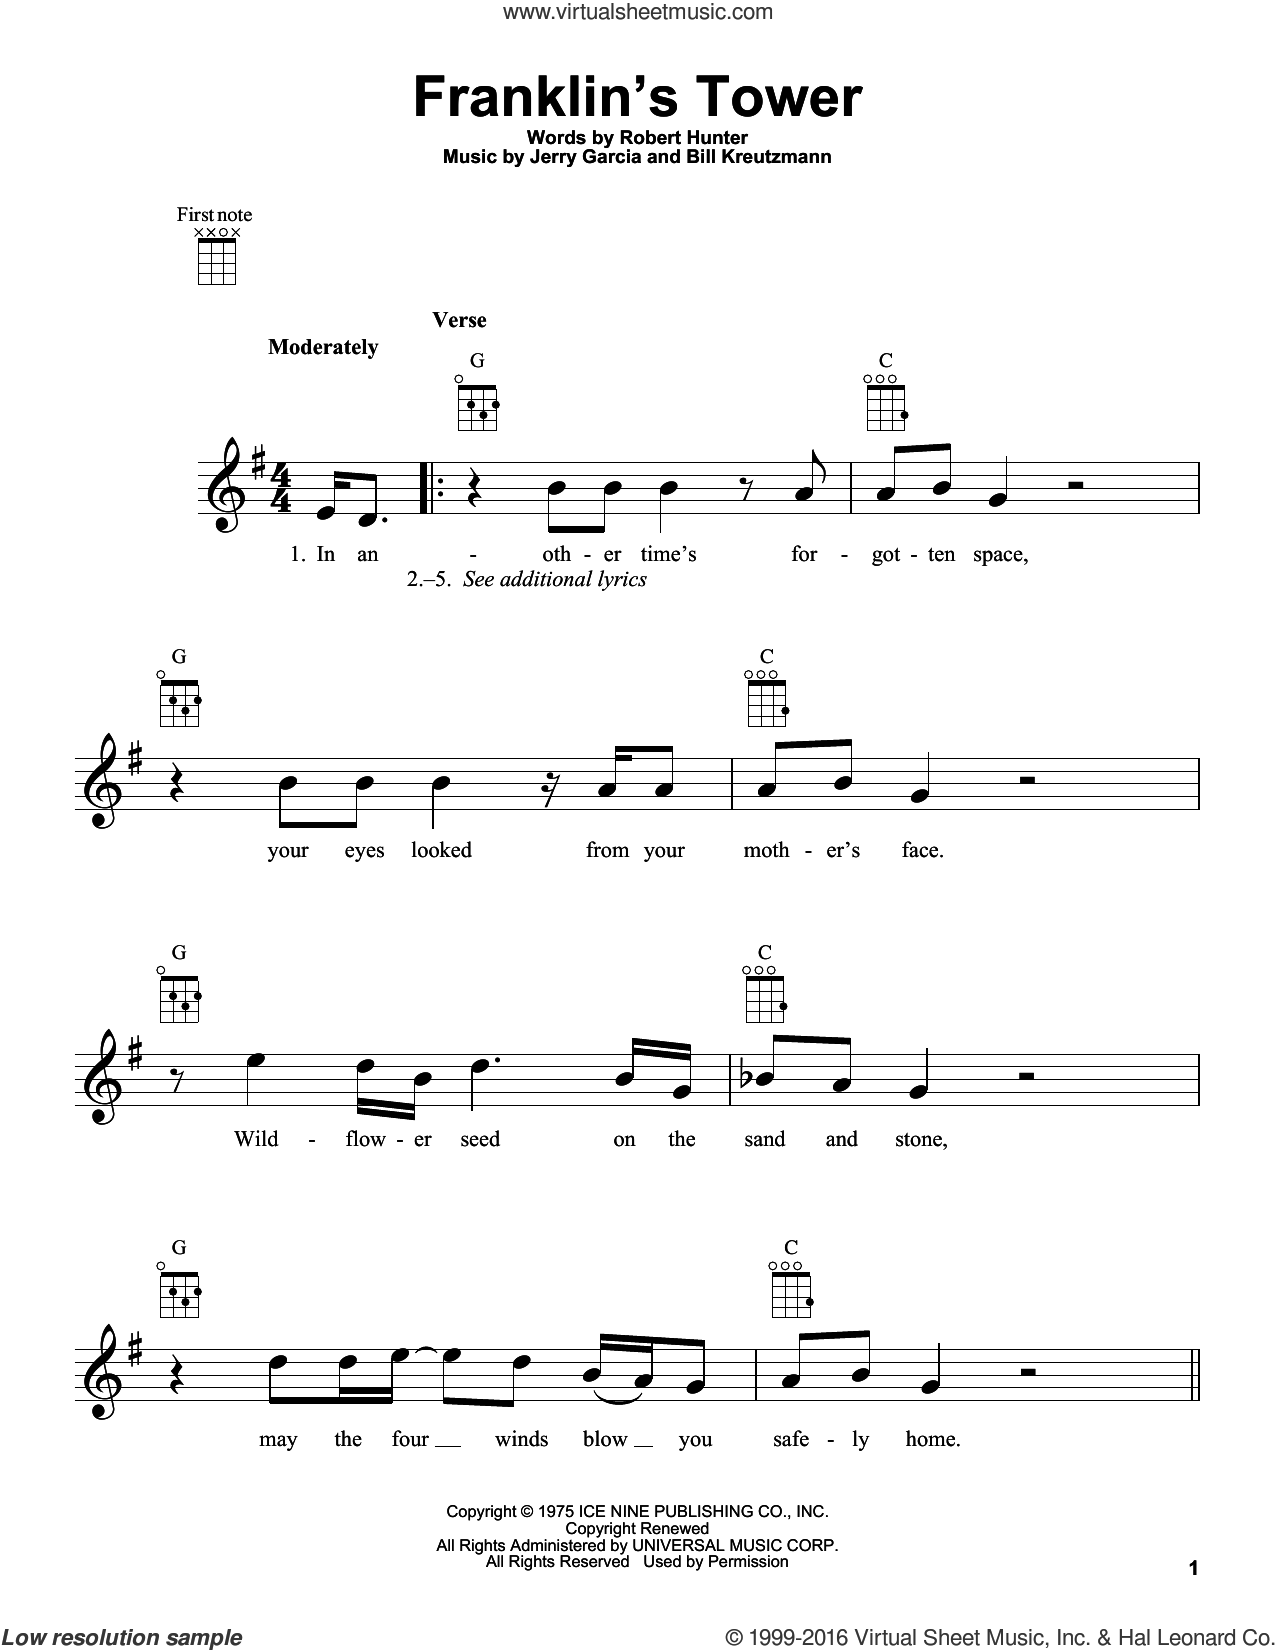 Franklin's Tower sheet music for ukulele by Grateful Dead, Bill Kreutzmann, Jerry Garcia and Robert Hunter, intermediate skill level